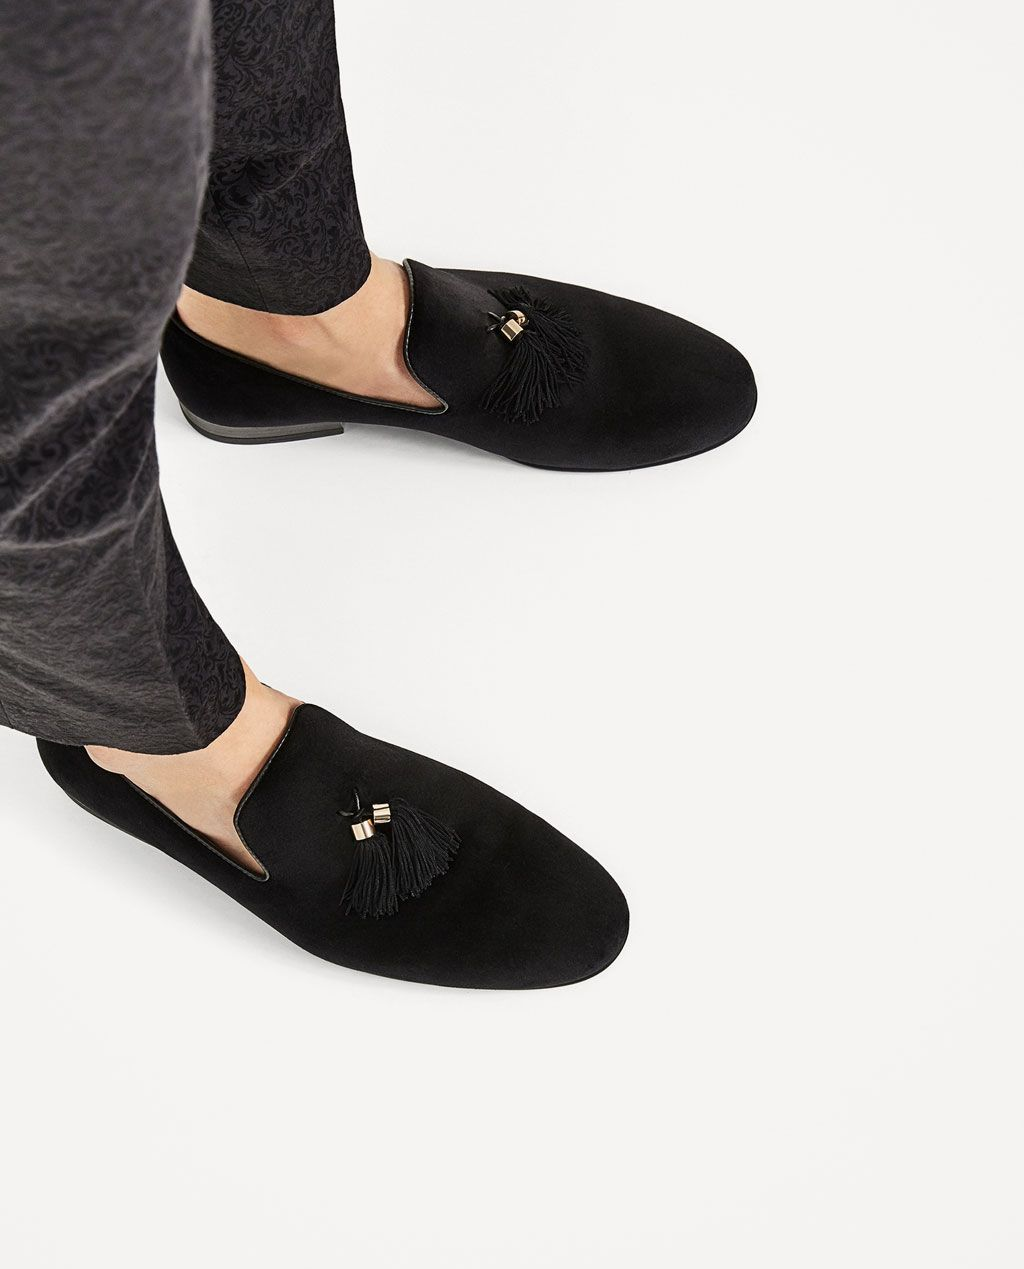 43a8923b14b BLACK VELVET LOAFERS WITH TASSELS-SHOES-MAN